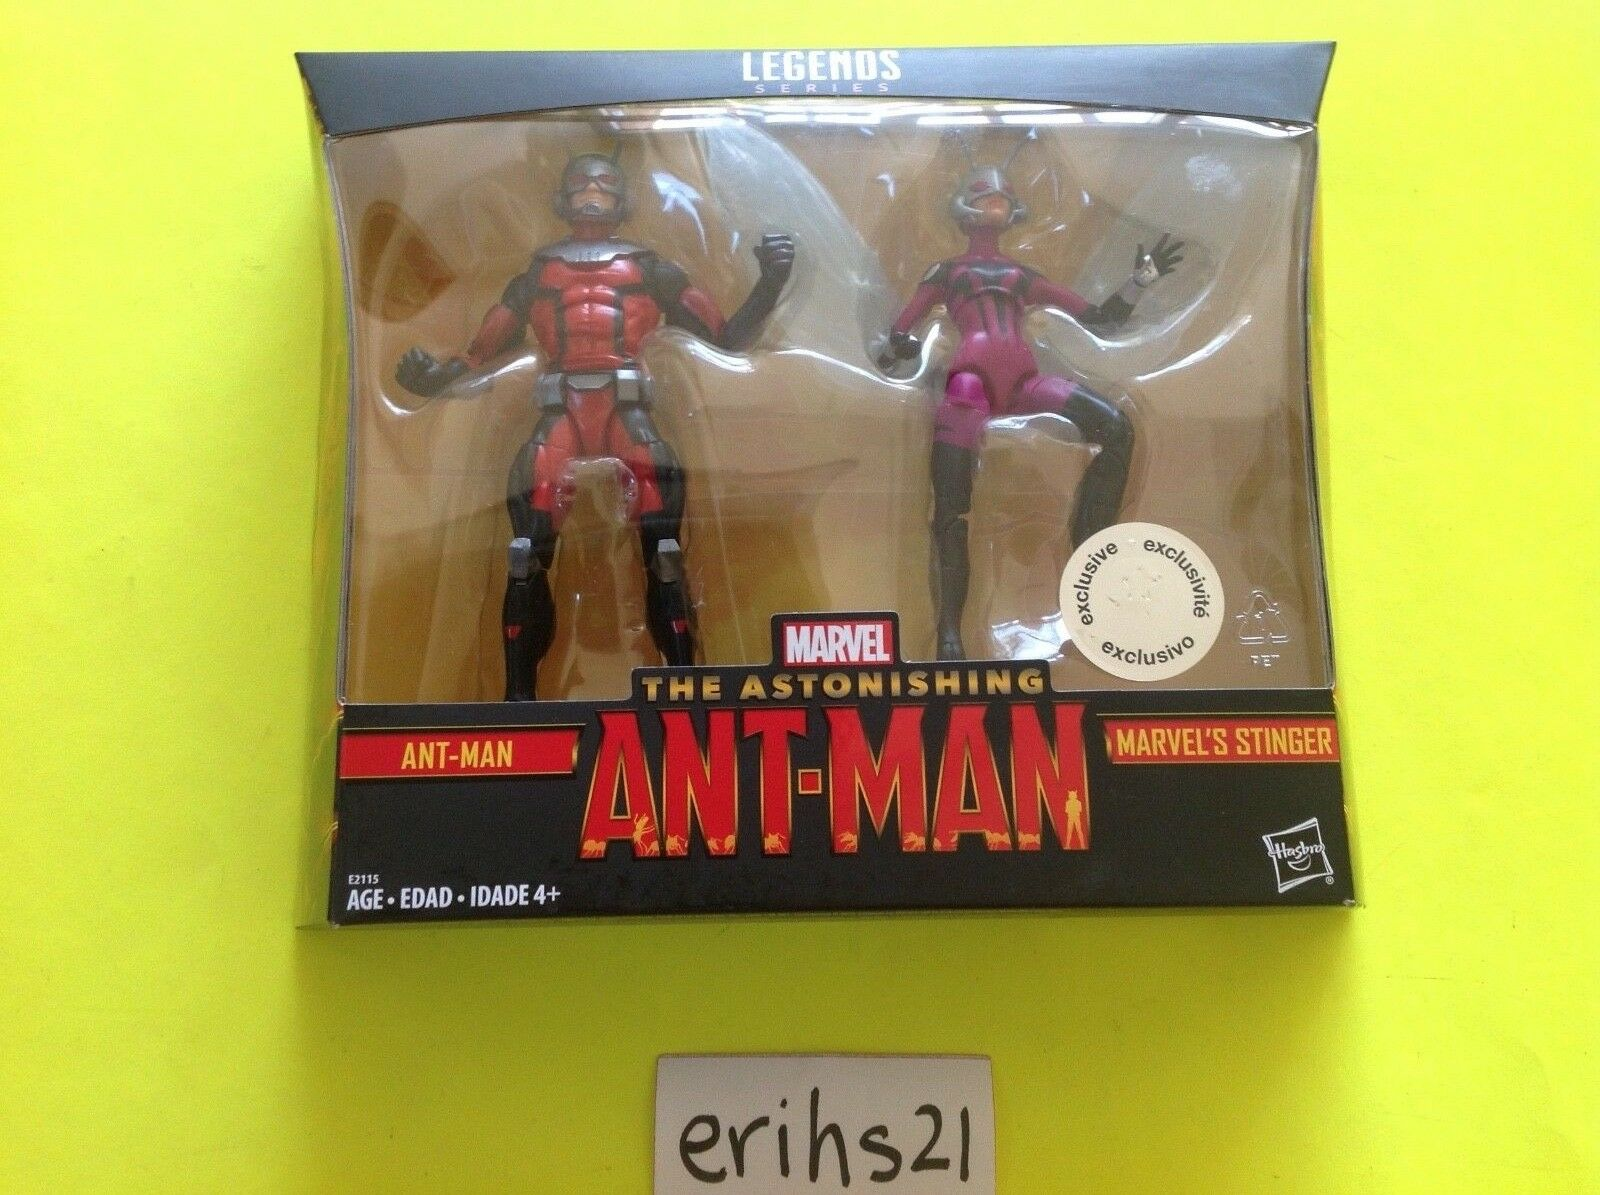 Marvel Legends The Astonishing Ant-Man & Marvel's Stinger TRU Exclusive ANTMAN